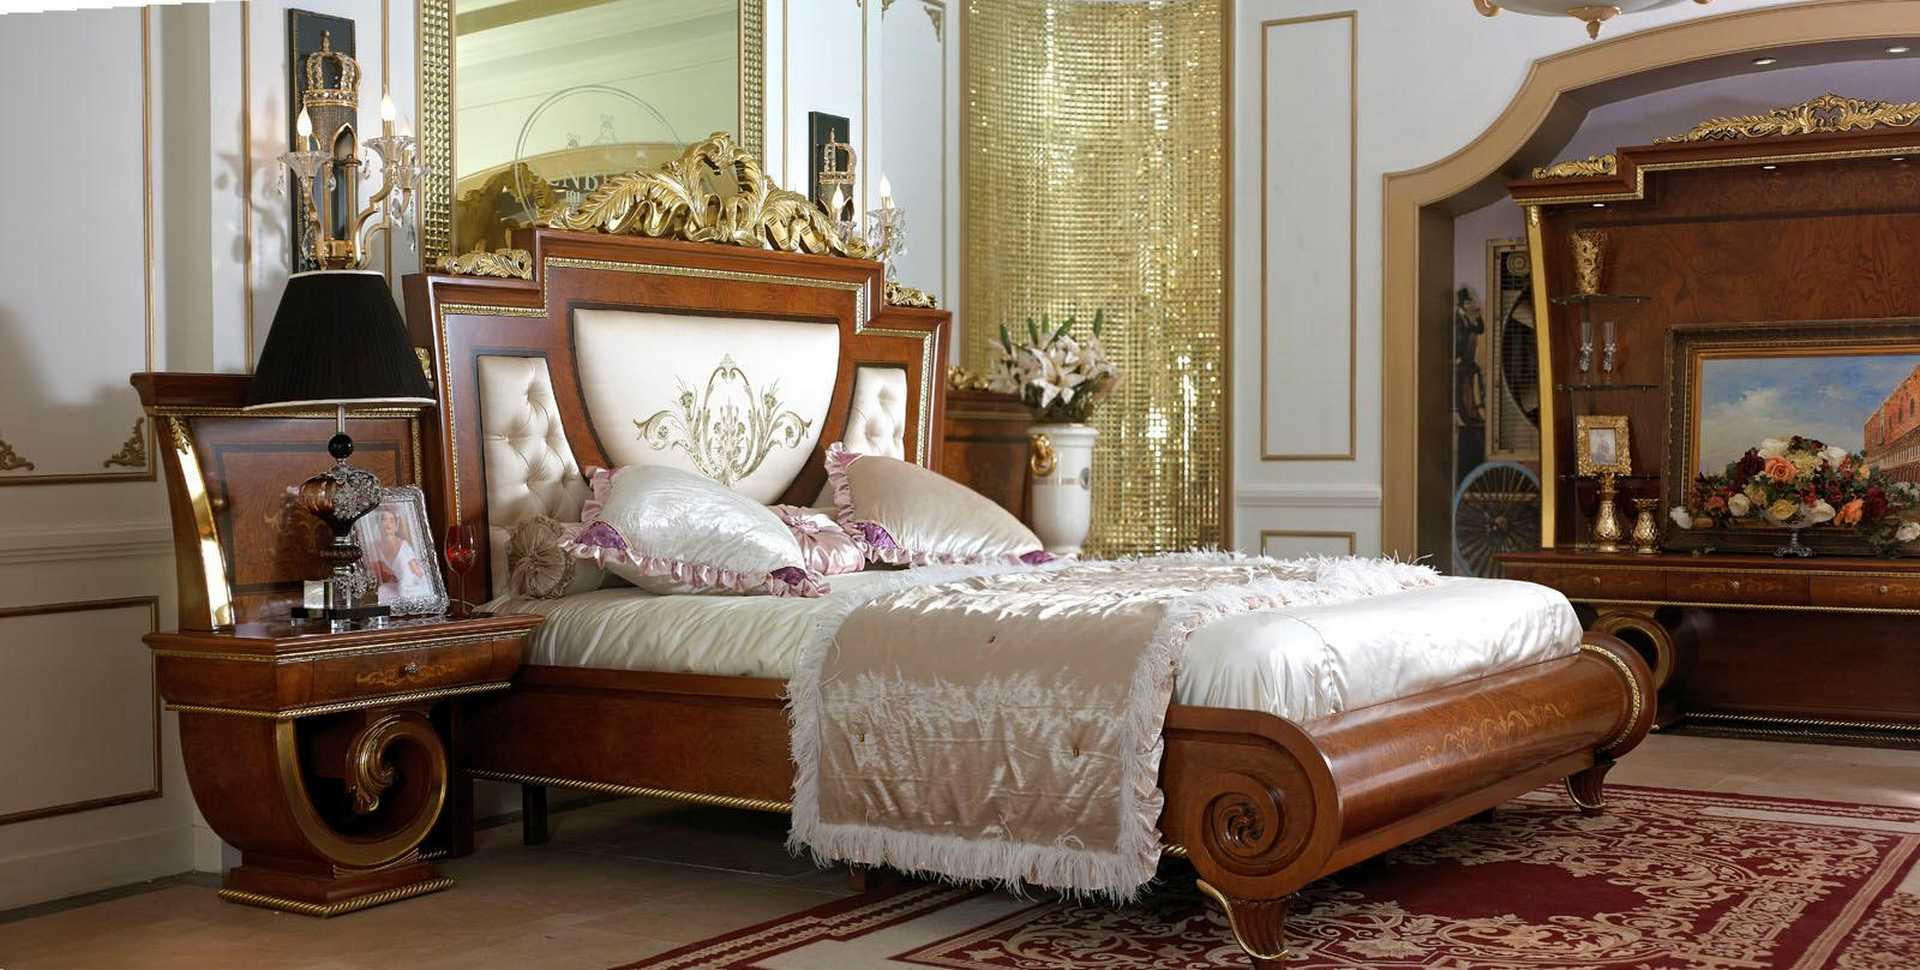 diy furniture ideas and more bedroom decorating tips  diy